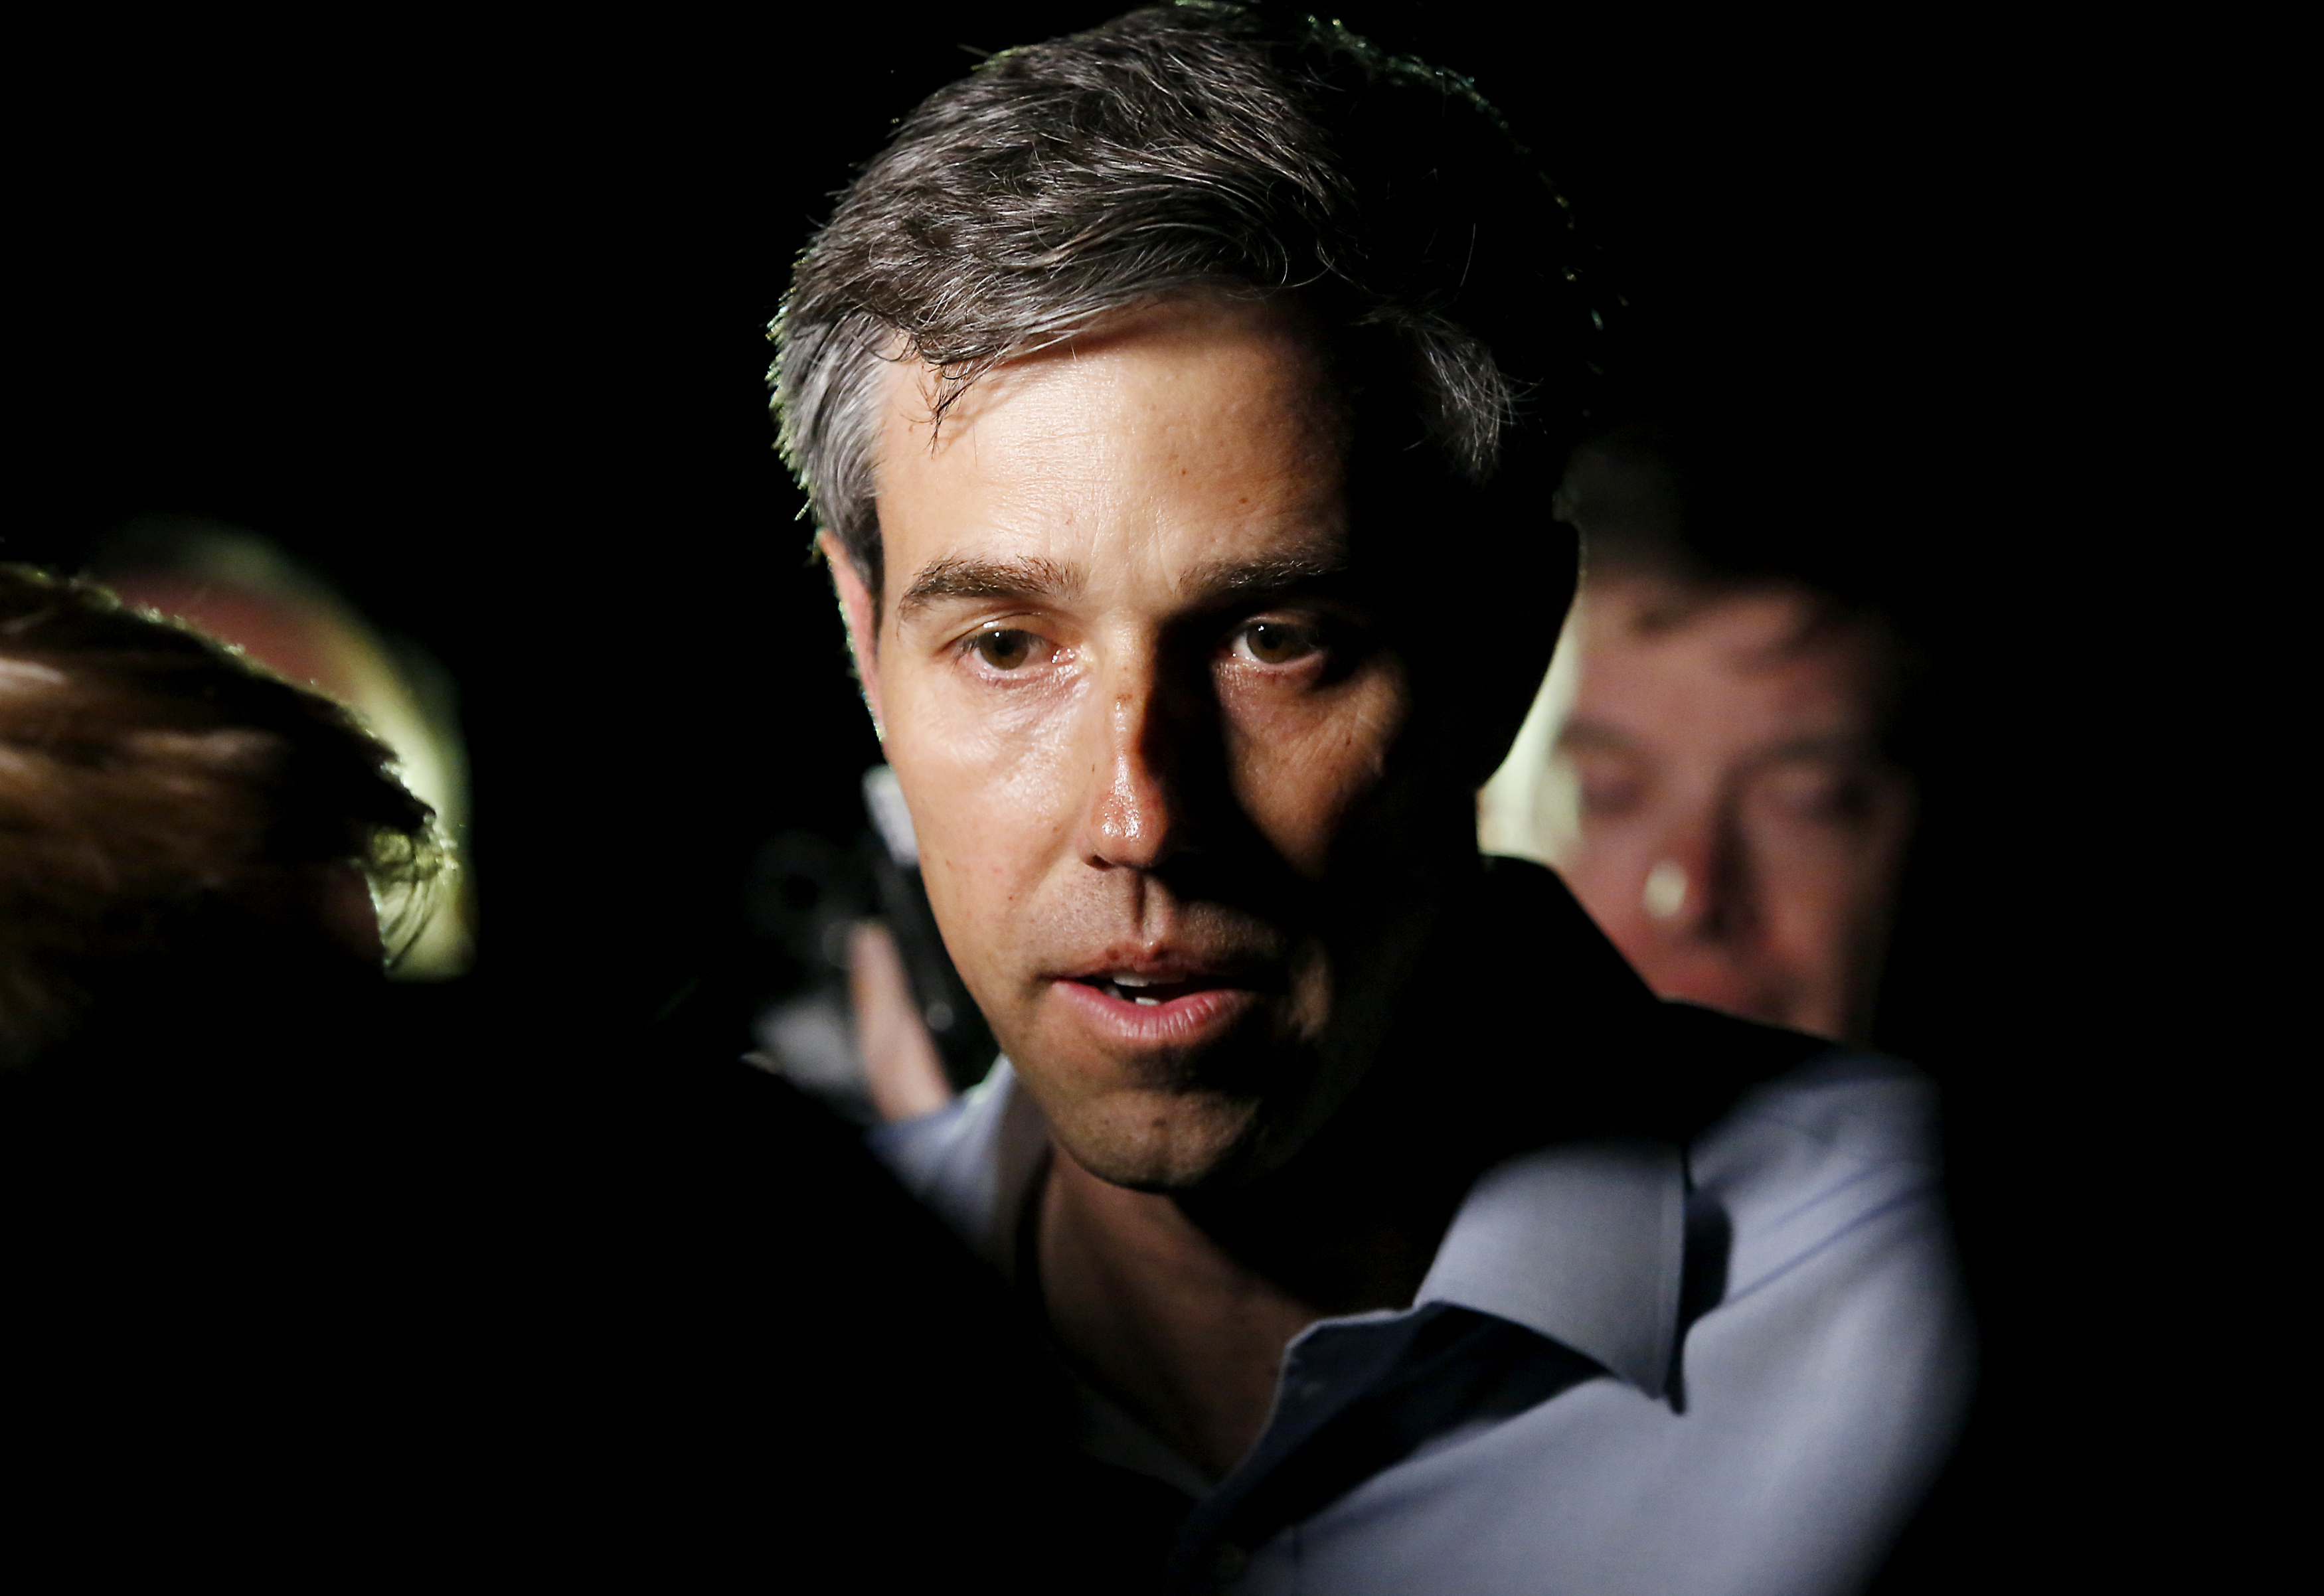 'Oh, that's the Beto line': Fellow 2020 Democrats take shots at O'Rourke